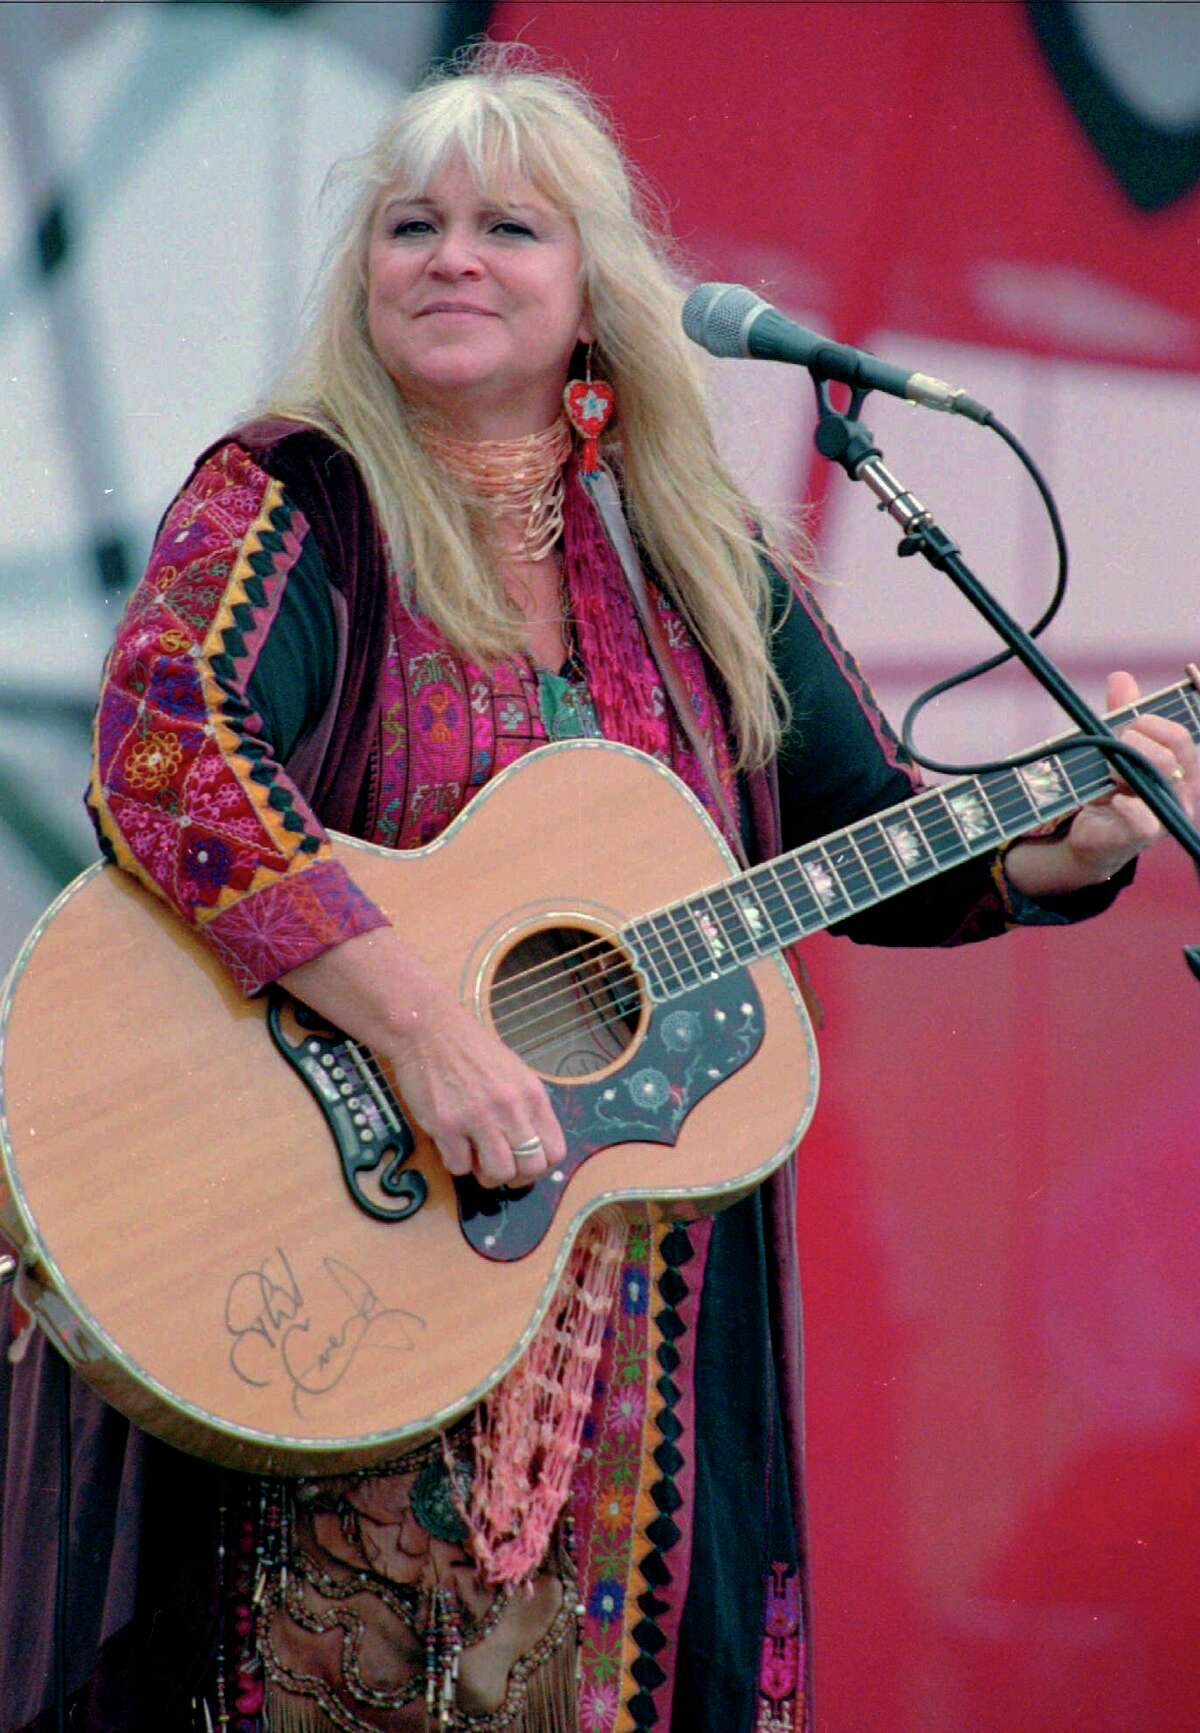 """FILE - In this Aug. 15, 1998, file photo, Melanie Safka, who performed at the original Woodstock decades ago, opens the second day of the festival """"Day In The Garden,"""" in Bethel, N.Y. Melanie is one of the performers at WE 2019 Experience - also celebrating 50 years of Woodstock across two weekends at Saloon Studios Live in West Jefferson, N.C. Melanie performs on Sunday, Aug. 18, 2019. (AP Photo/Ken Bizzigotti, File)"""